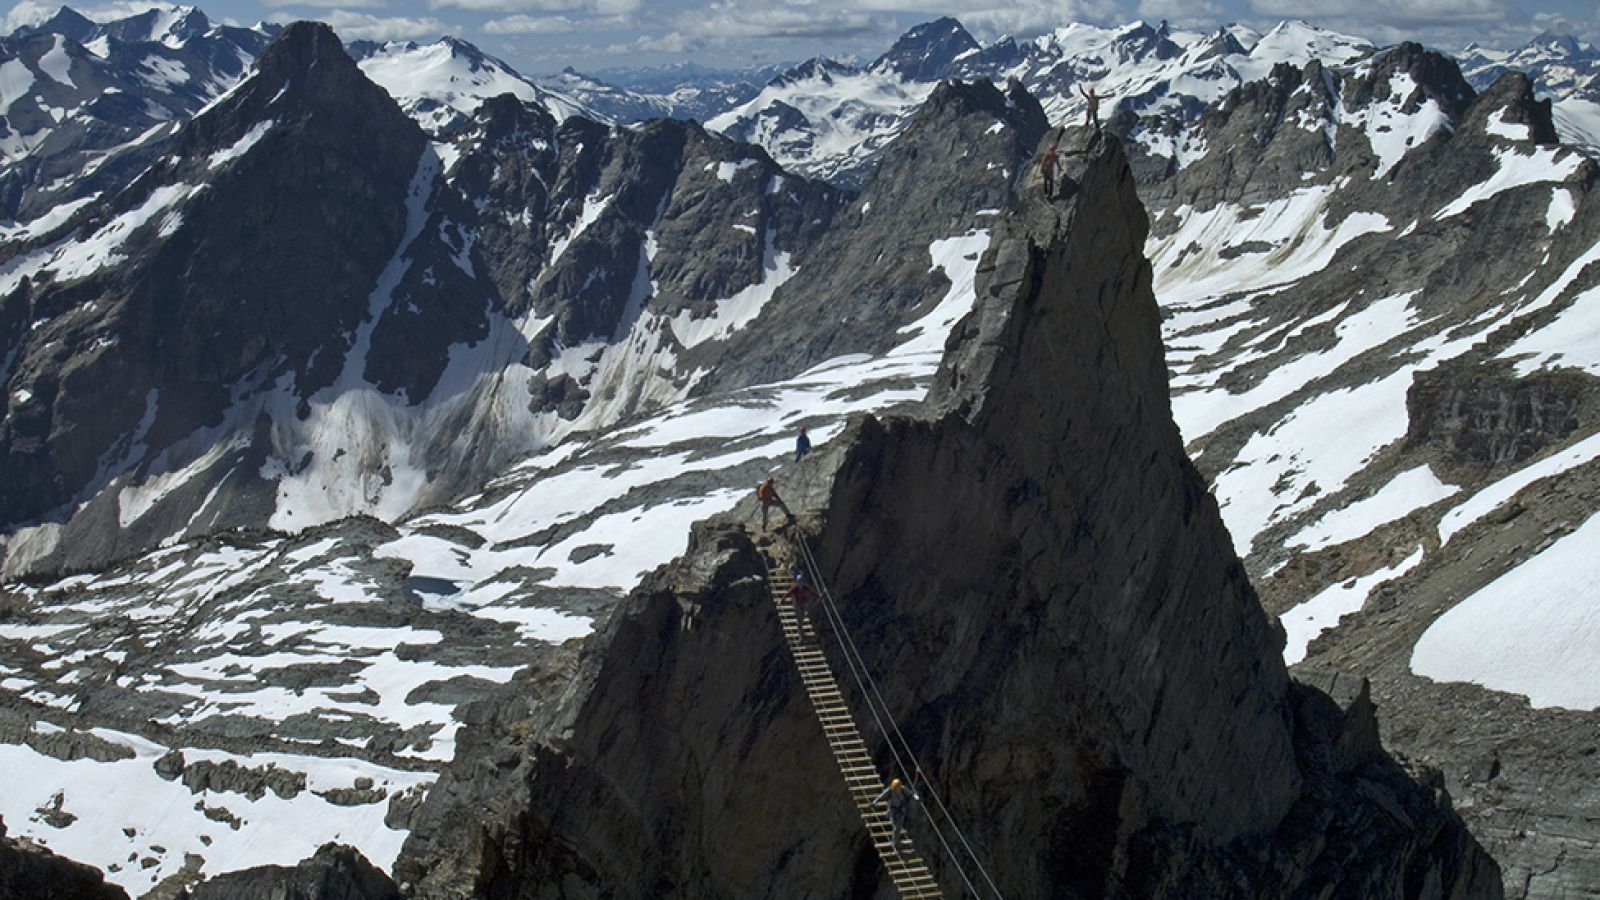 The Via Ferrata; Gery Unterasinger photo.